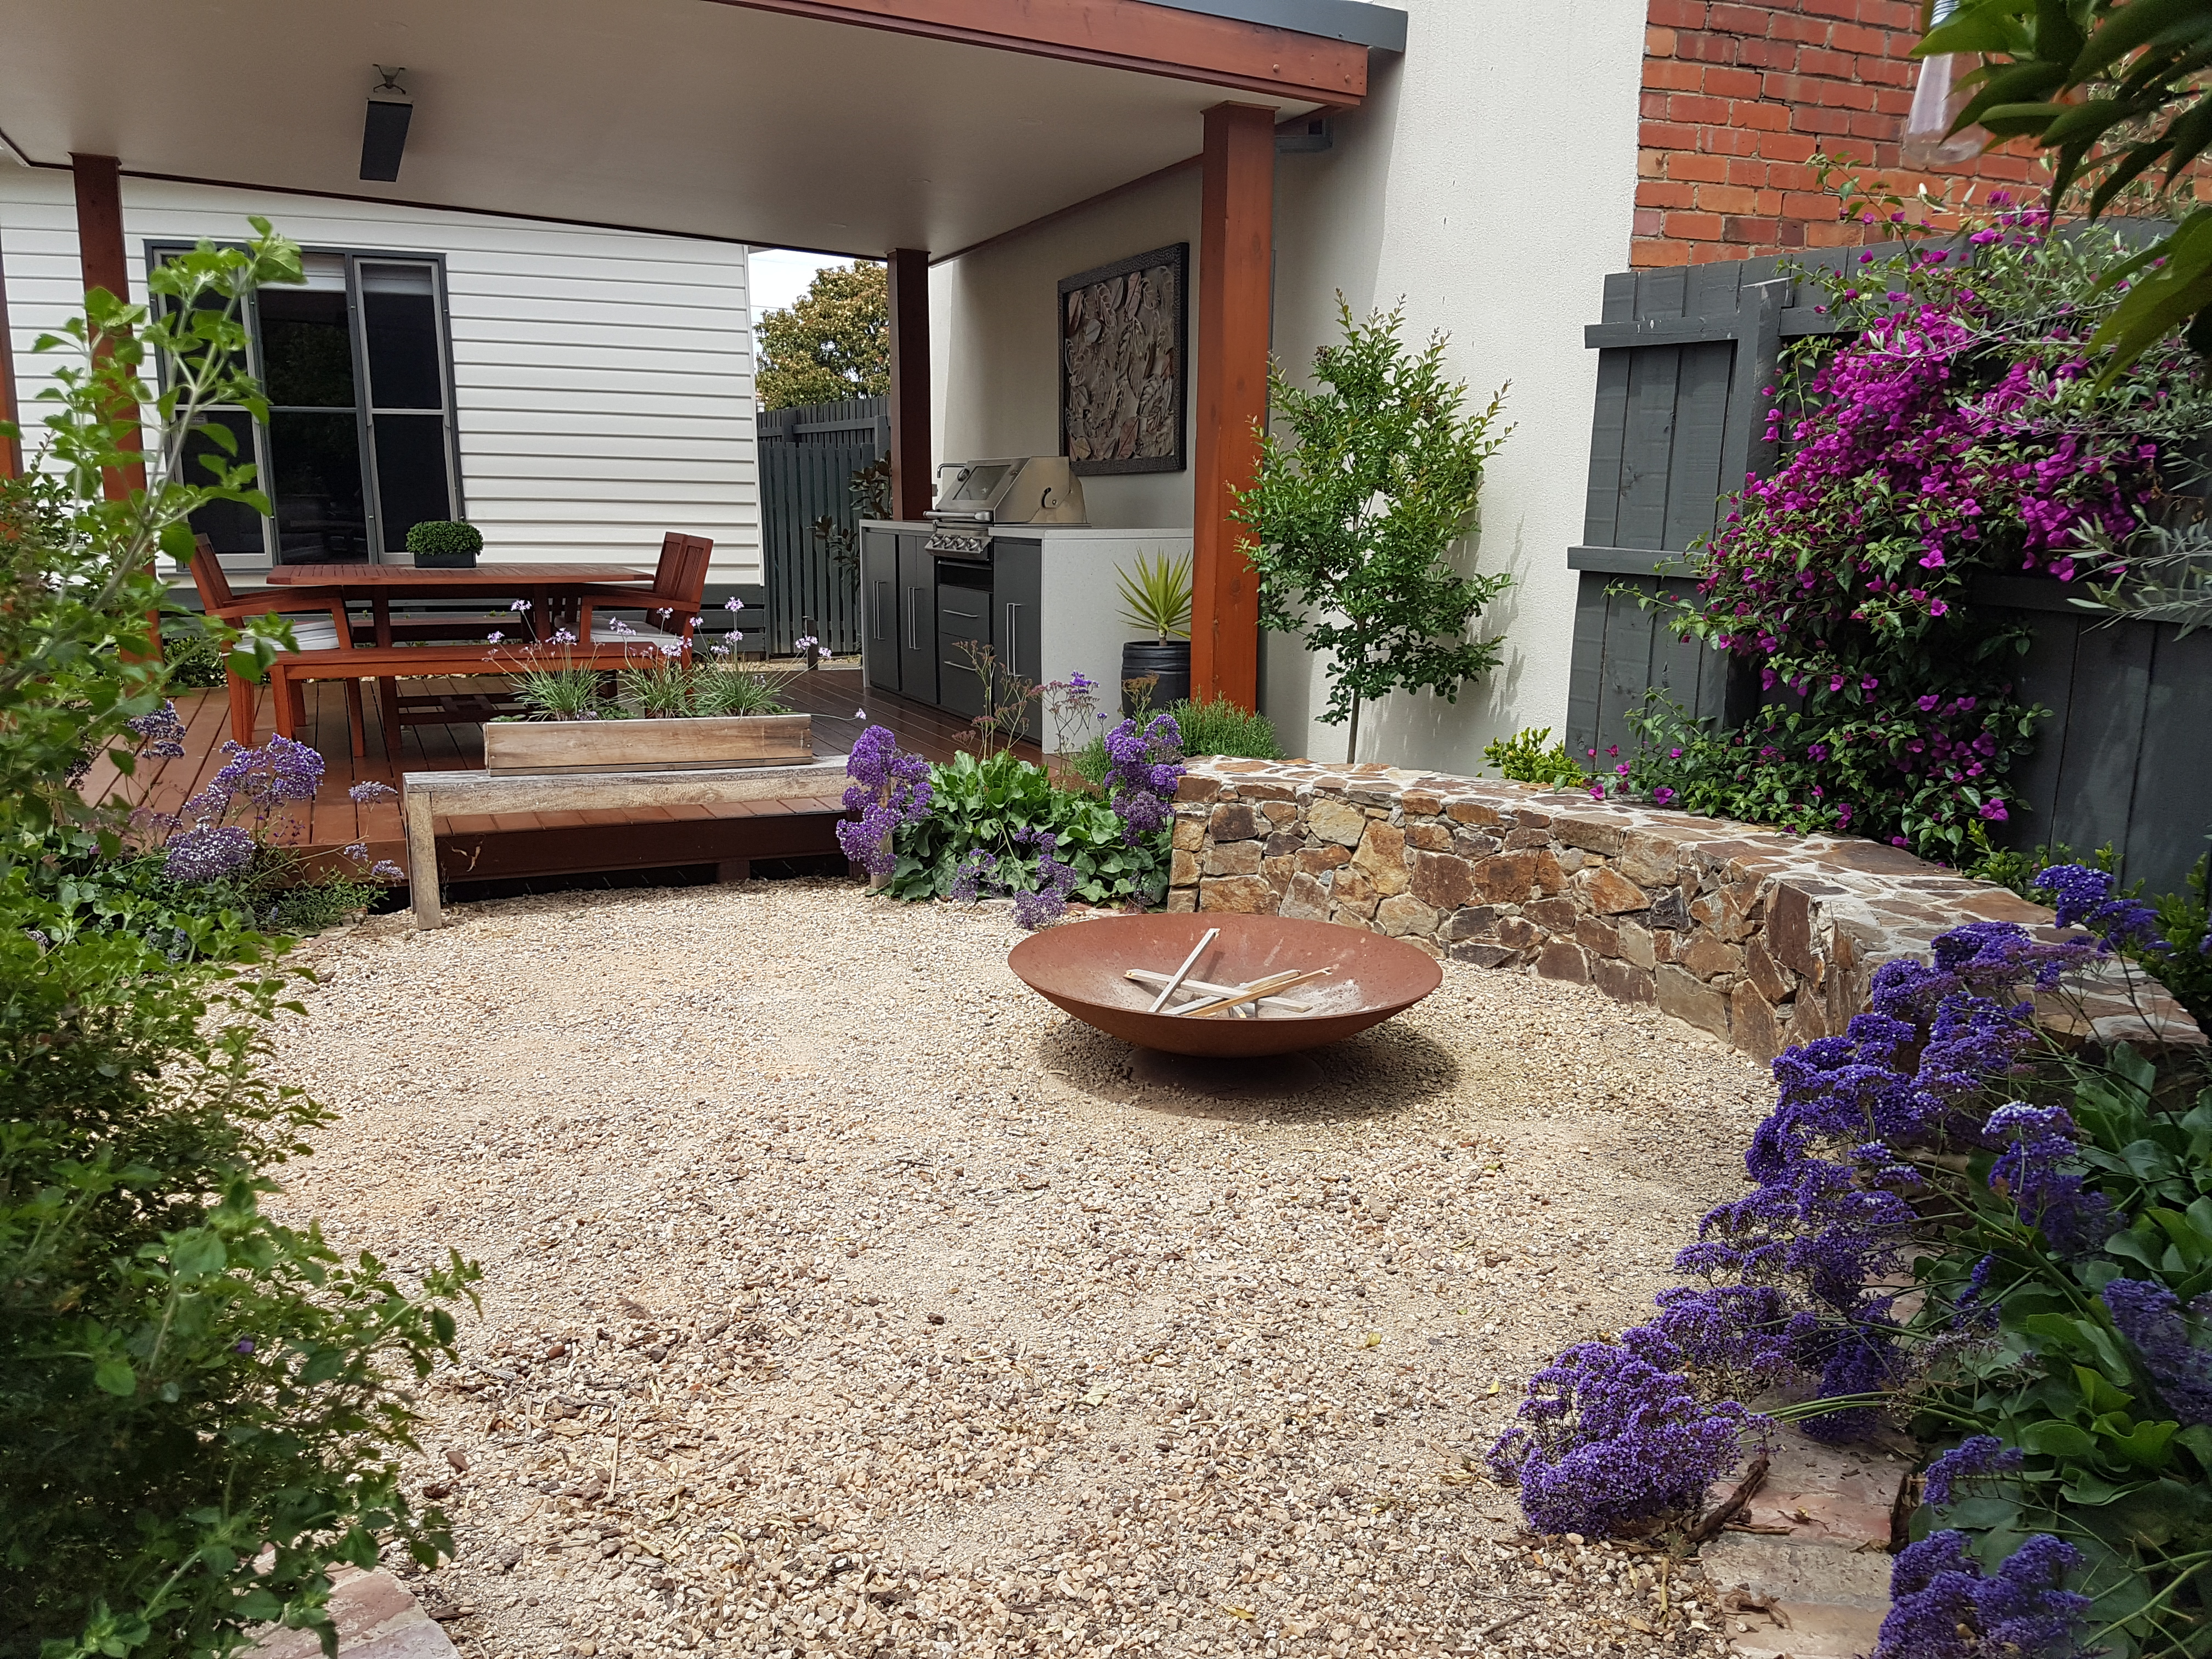 Fire pit, Coldstream stone seat, Compacted toppings